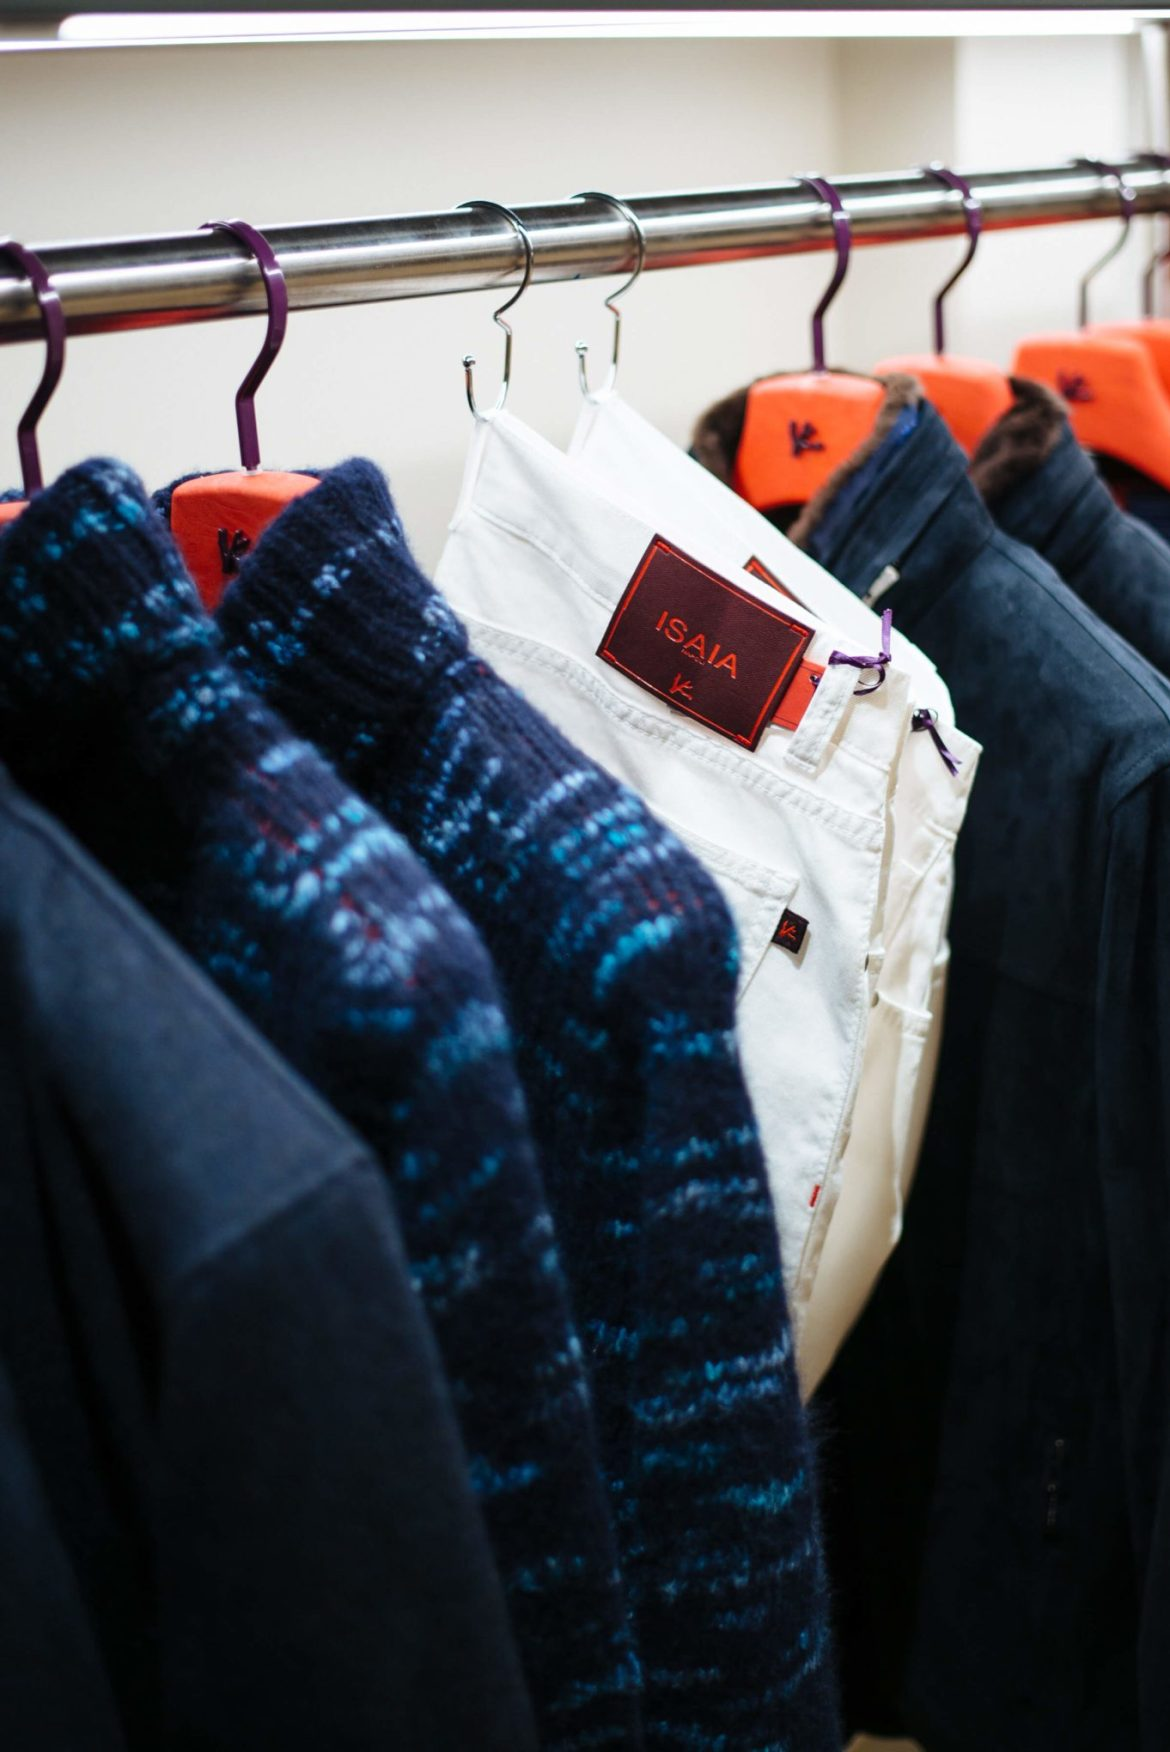 Suits and at Isaia San Francisco Store, Neapolitan Isaia suits in the historic VC Morris Frank Lloyd Wright San Francisco, The Taste Edit